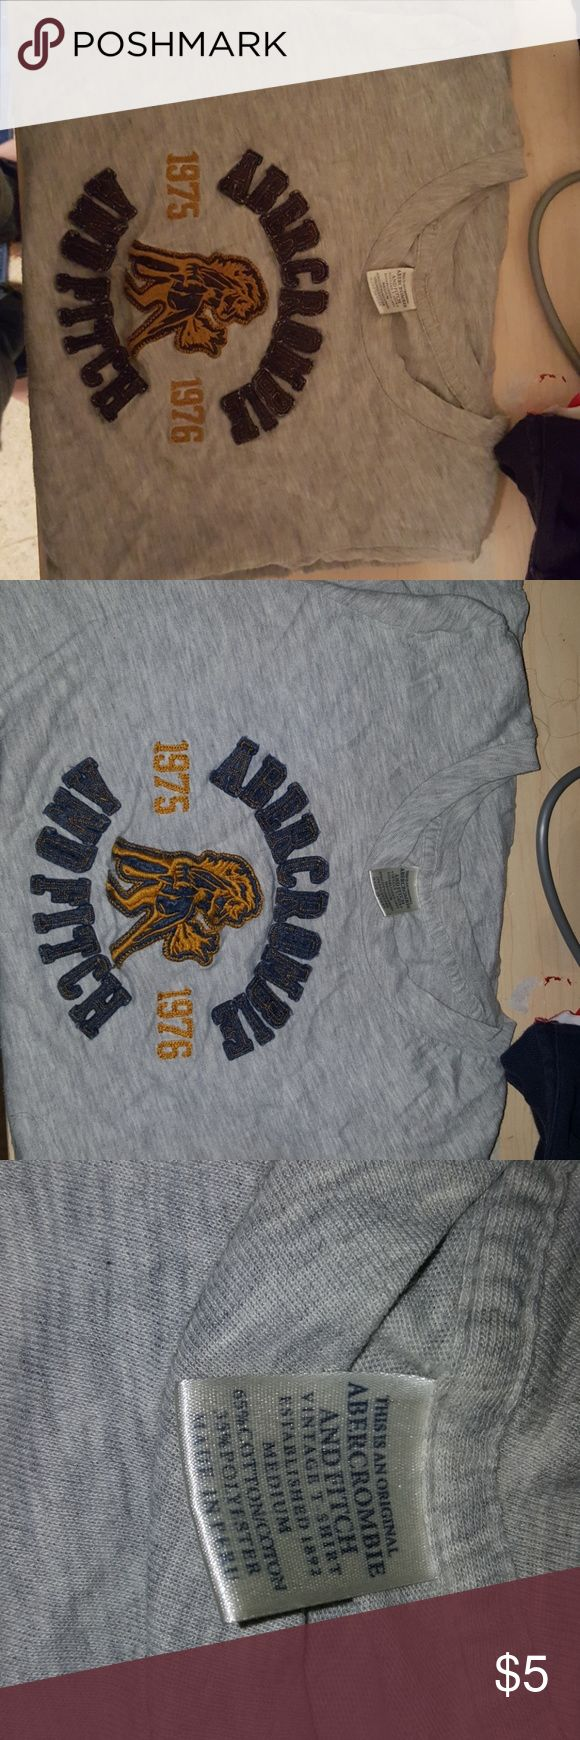 T-shirt Abercrombie and Fitch Dark blue and orange lettering on a grey shirt no holes or tears only wore once didn't like the way it looked on me. In great condition like new Abercrombie & Fitch Tops